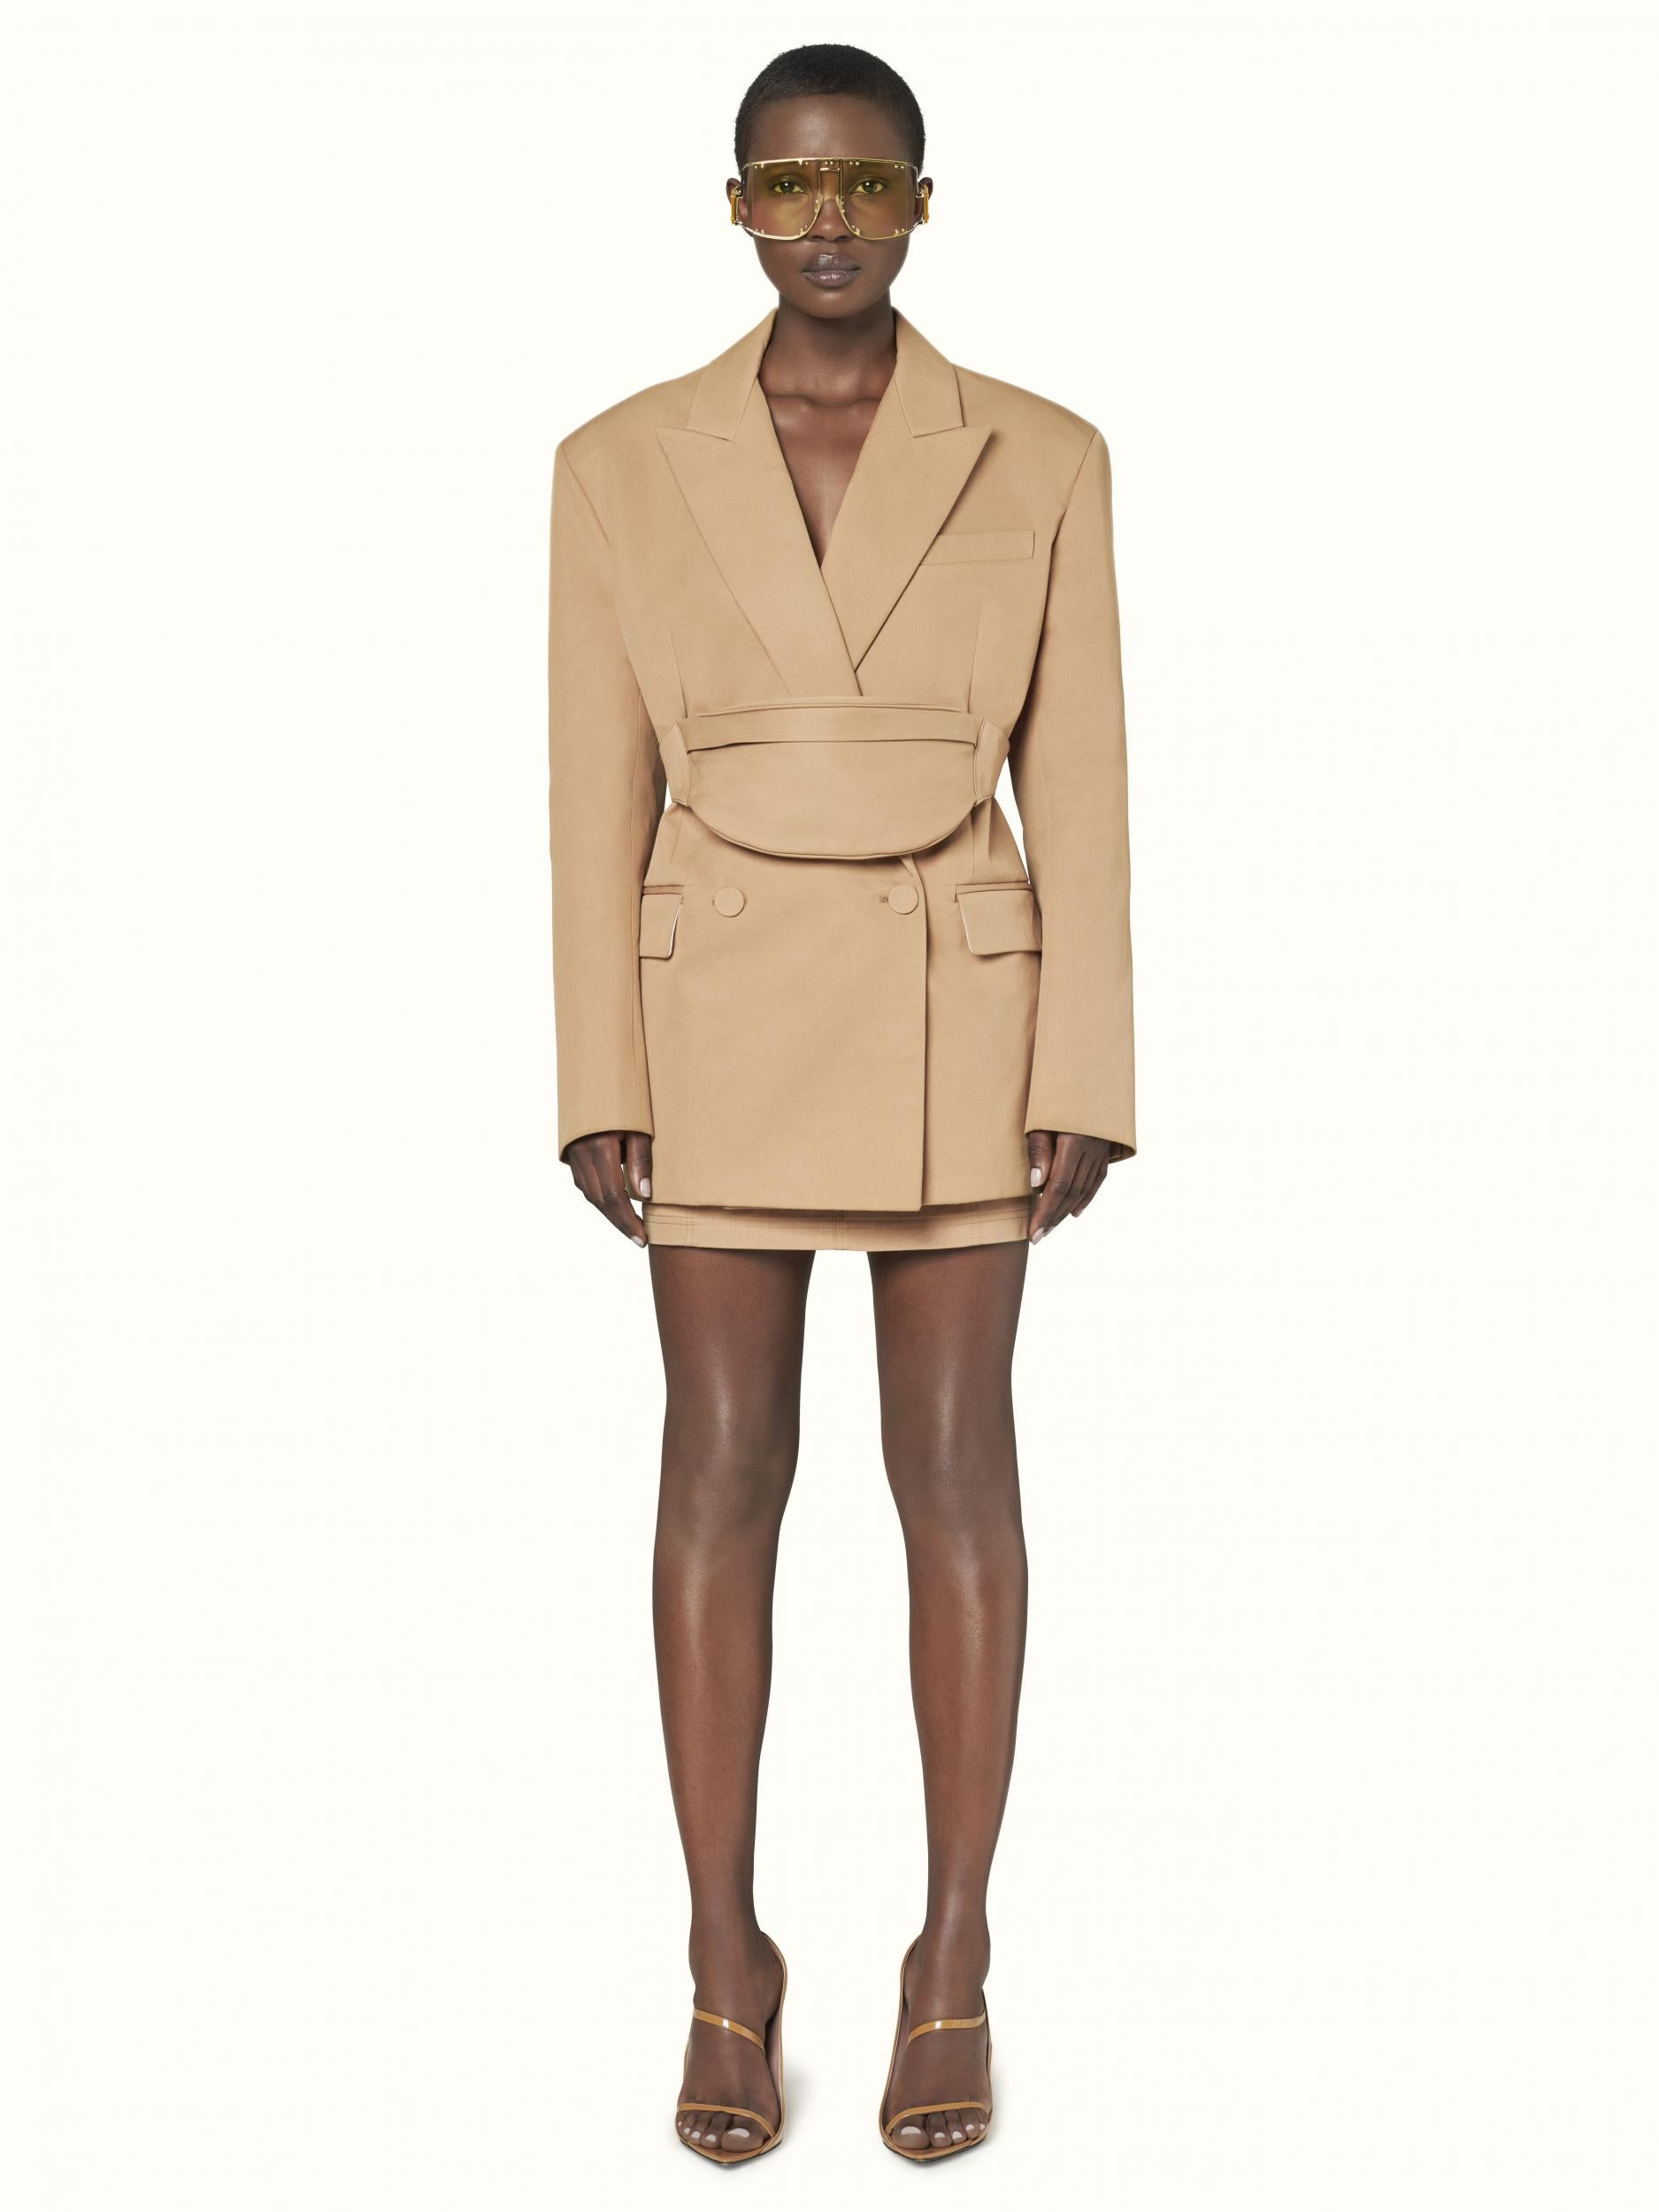 266ccad2b7 Rihanna Fenty collection: Lookbook, prices, release date and how to buy